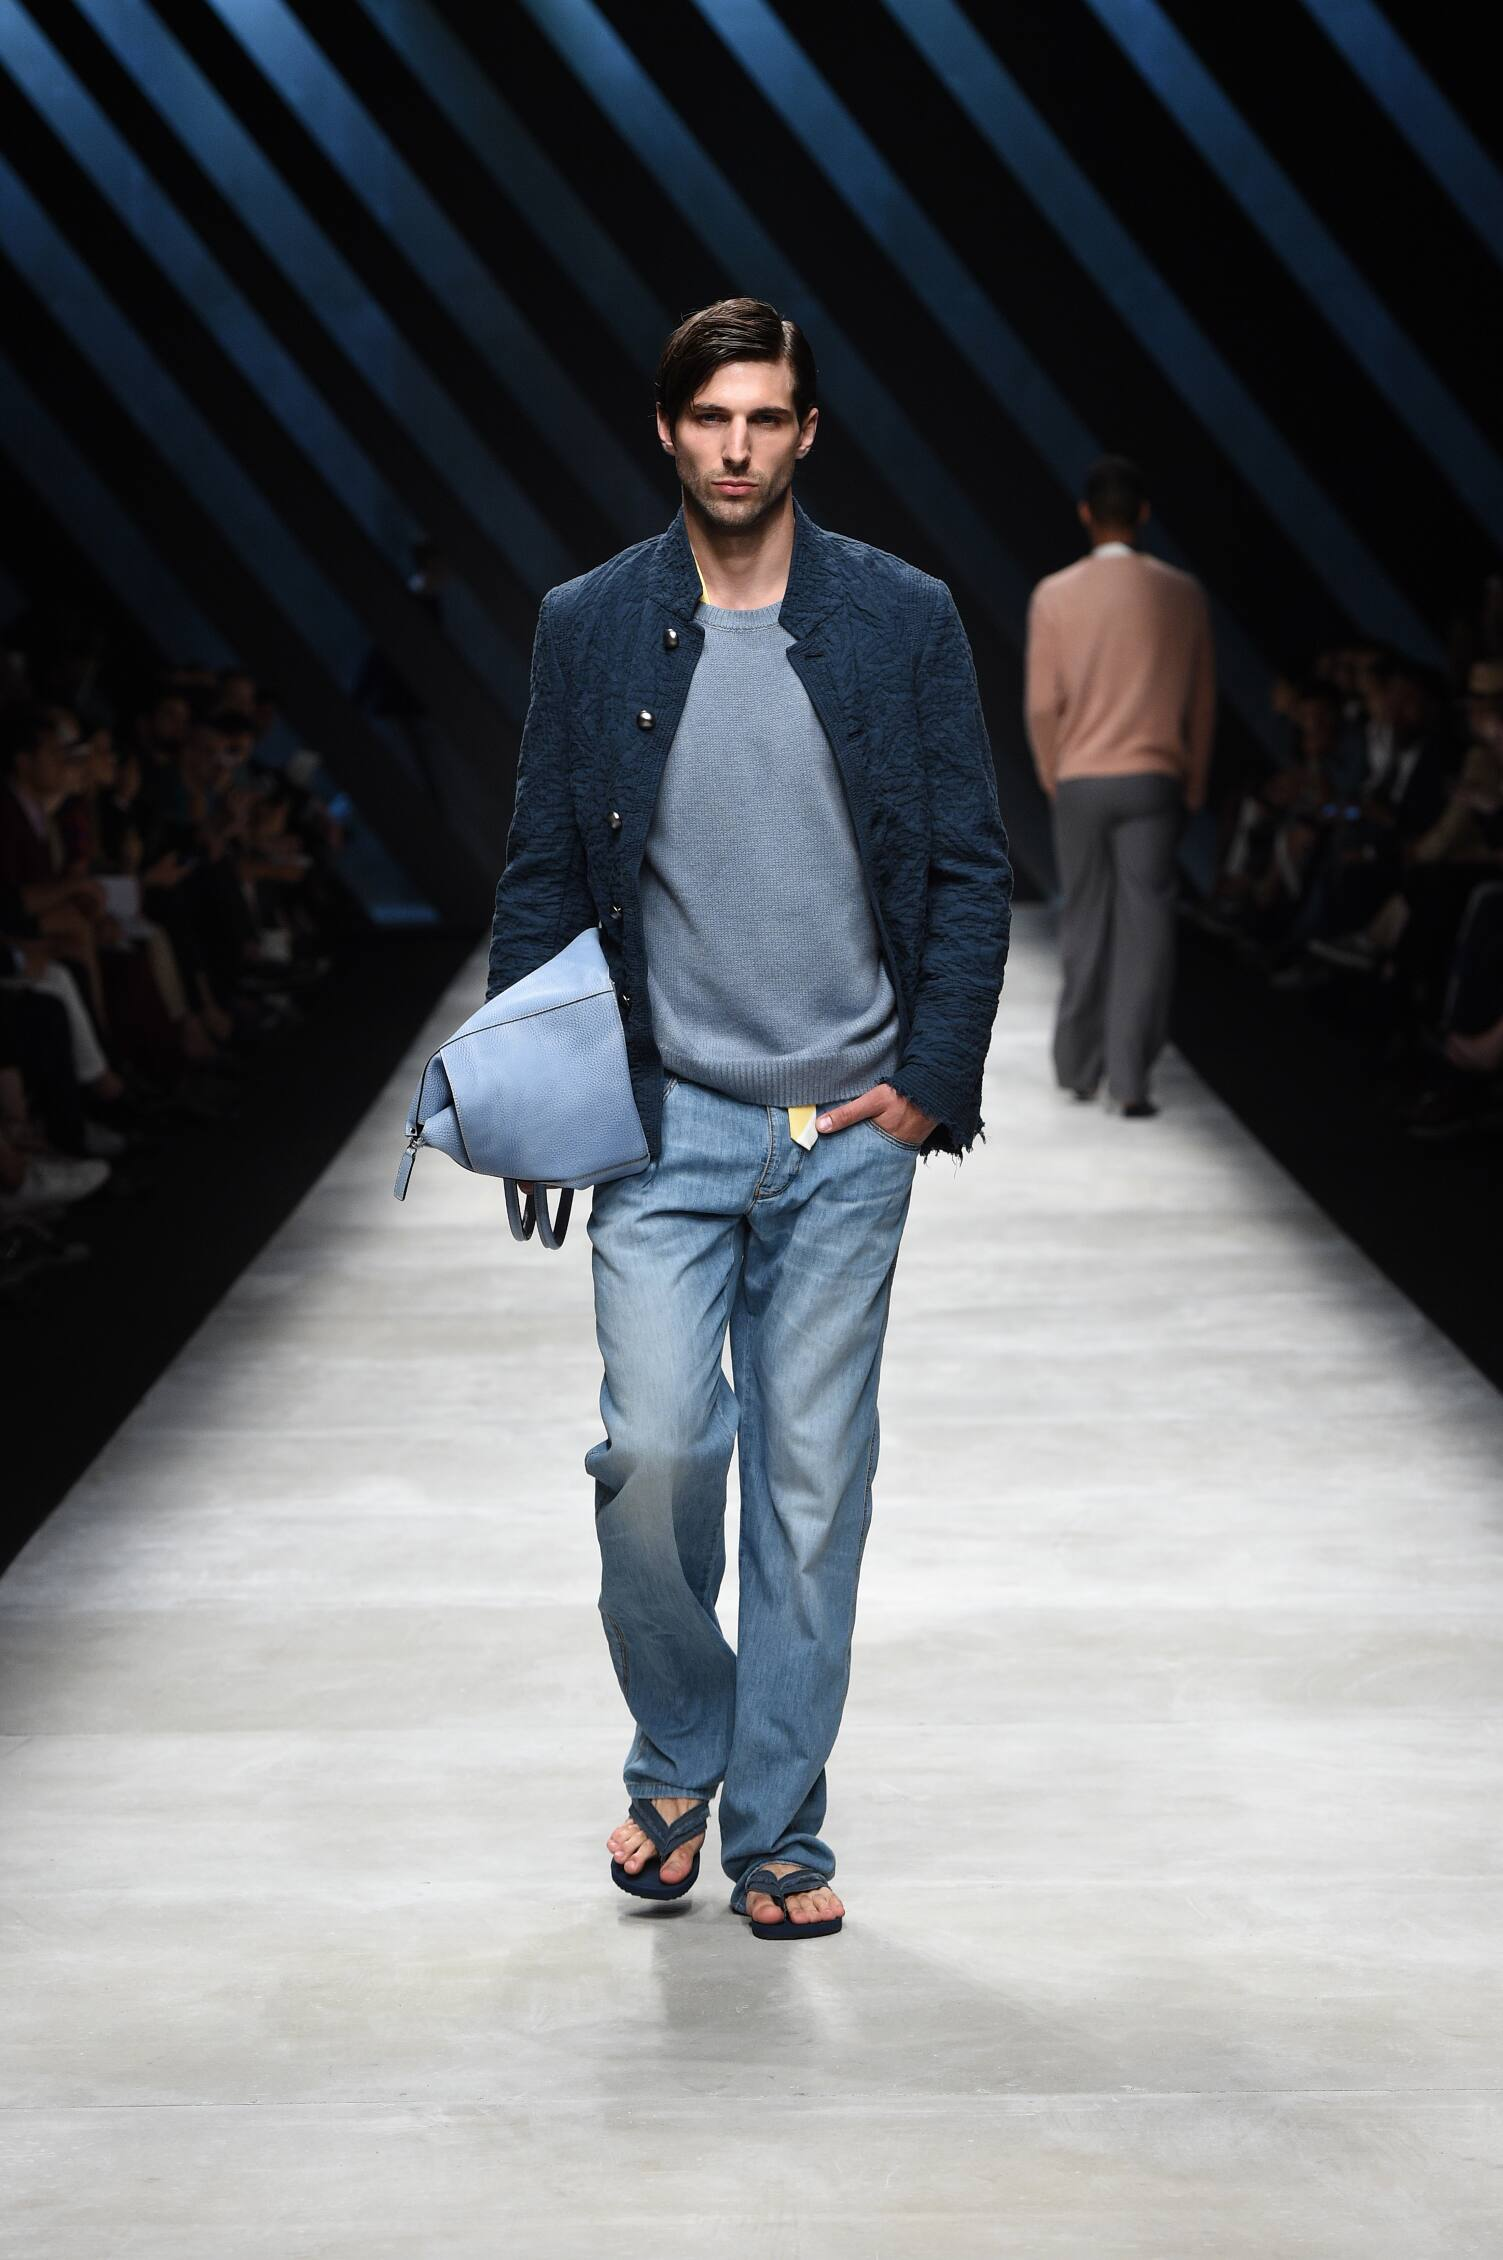 2016 Fashion Man Model Ermanno Scervino Collection Catwalk